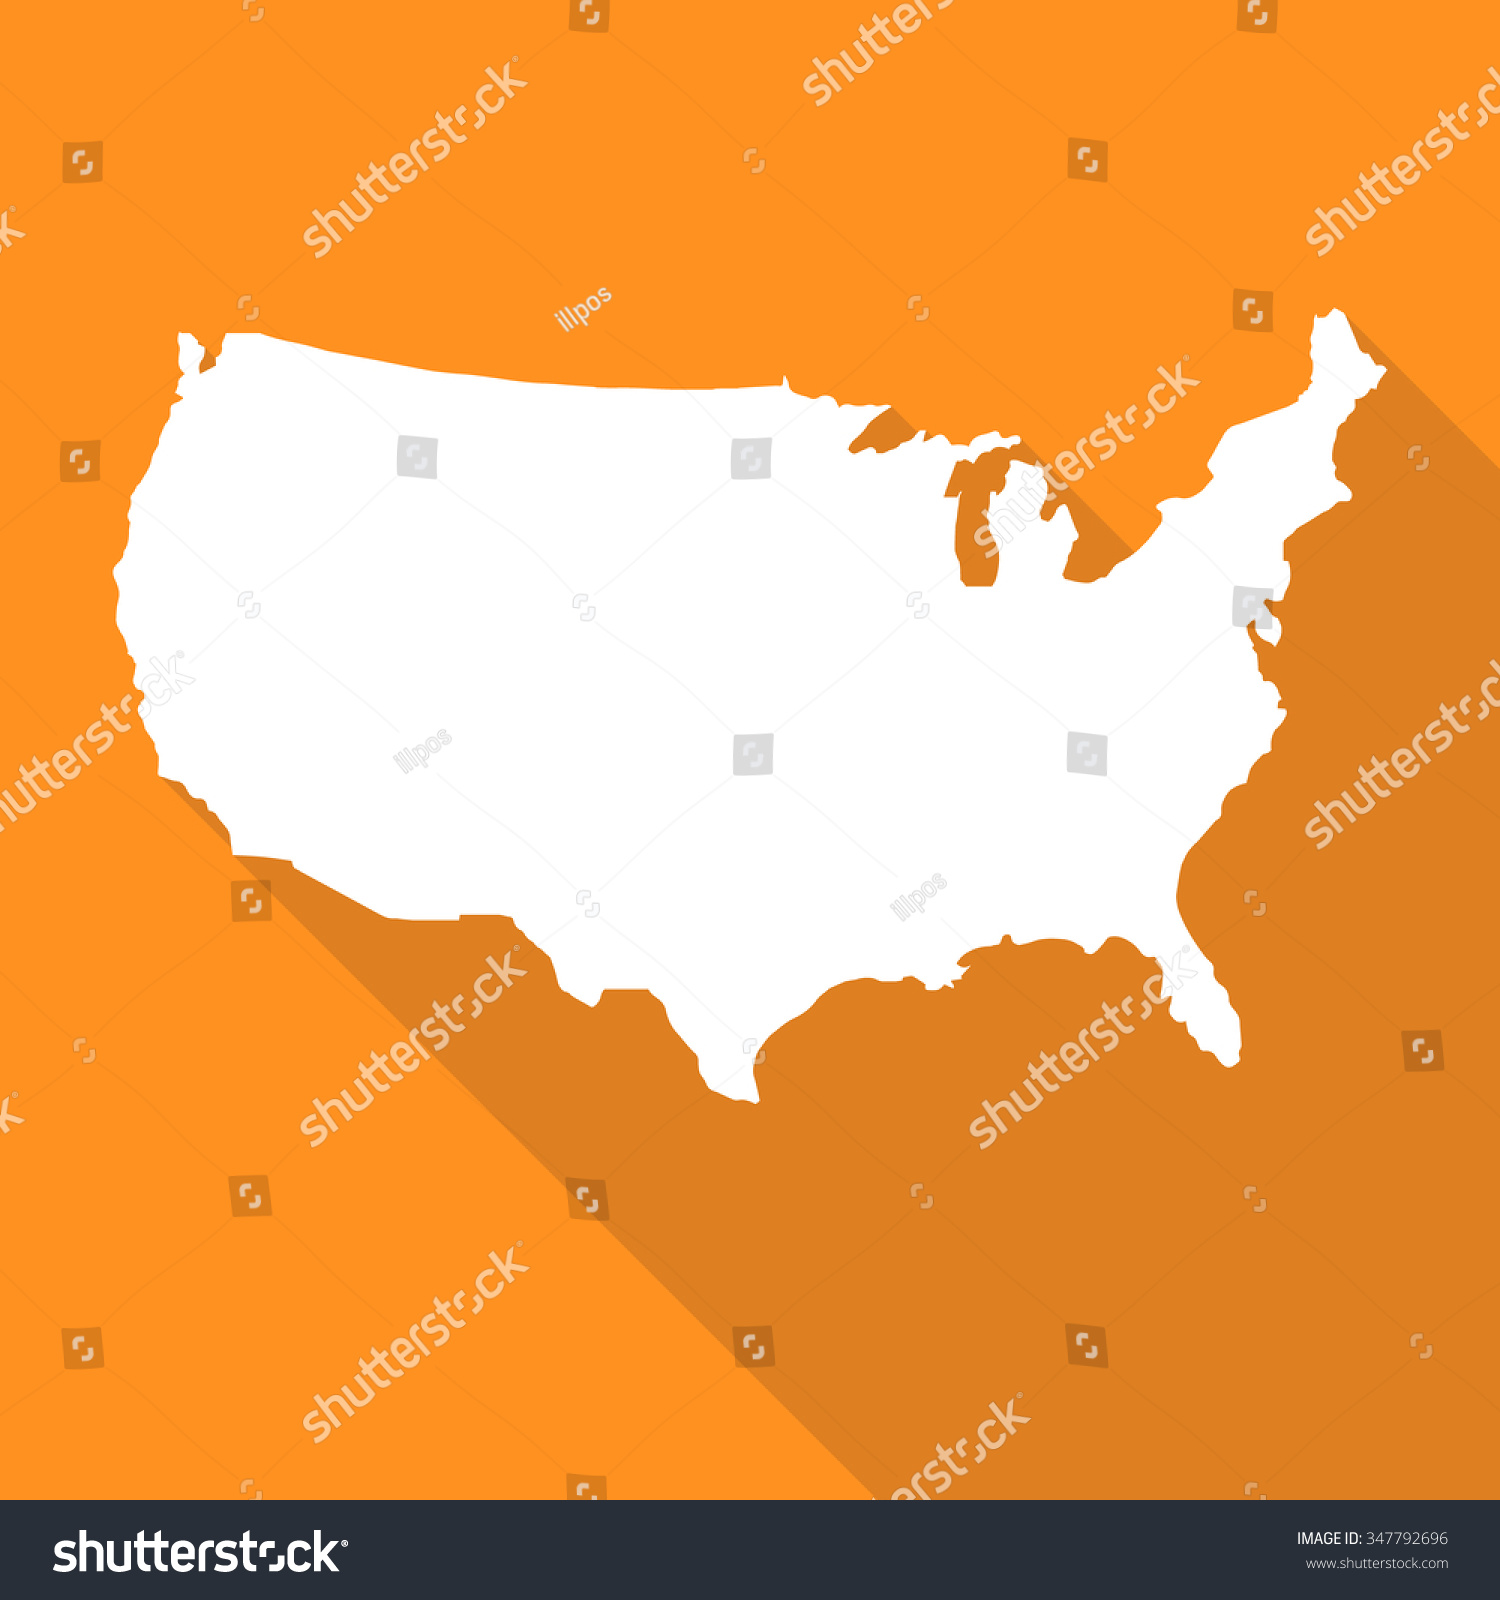 United States Americausa Map Flat Simple Stock Vector - Printable us map landscape